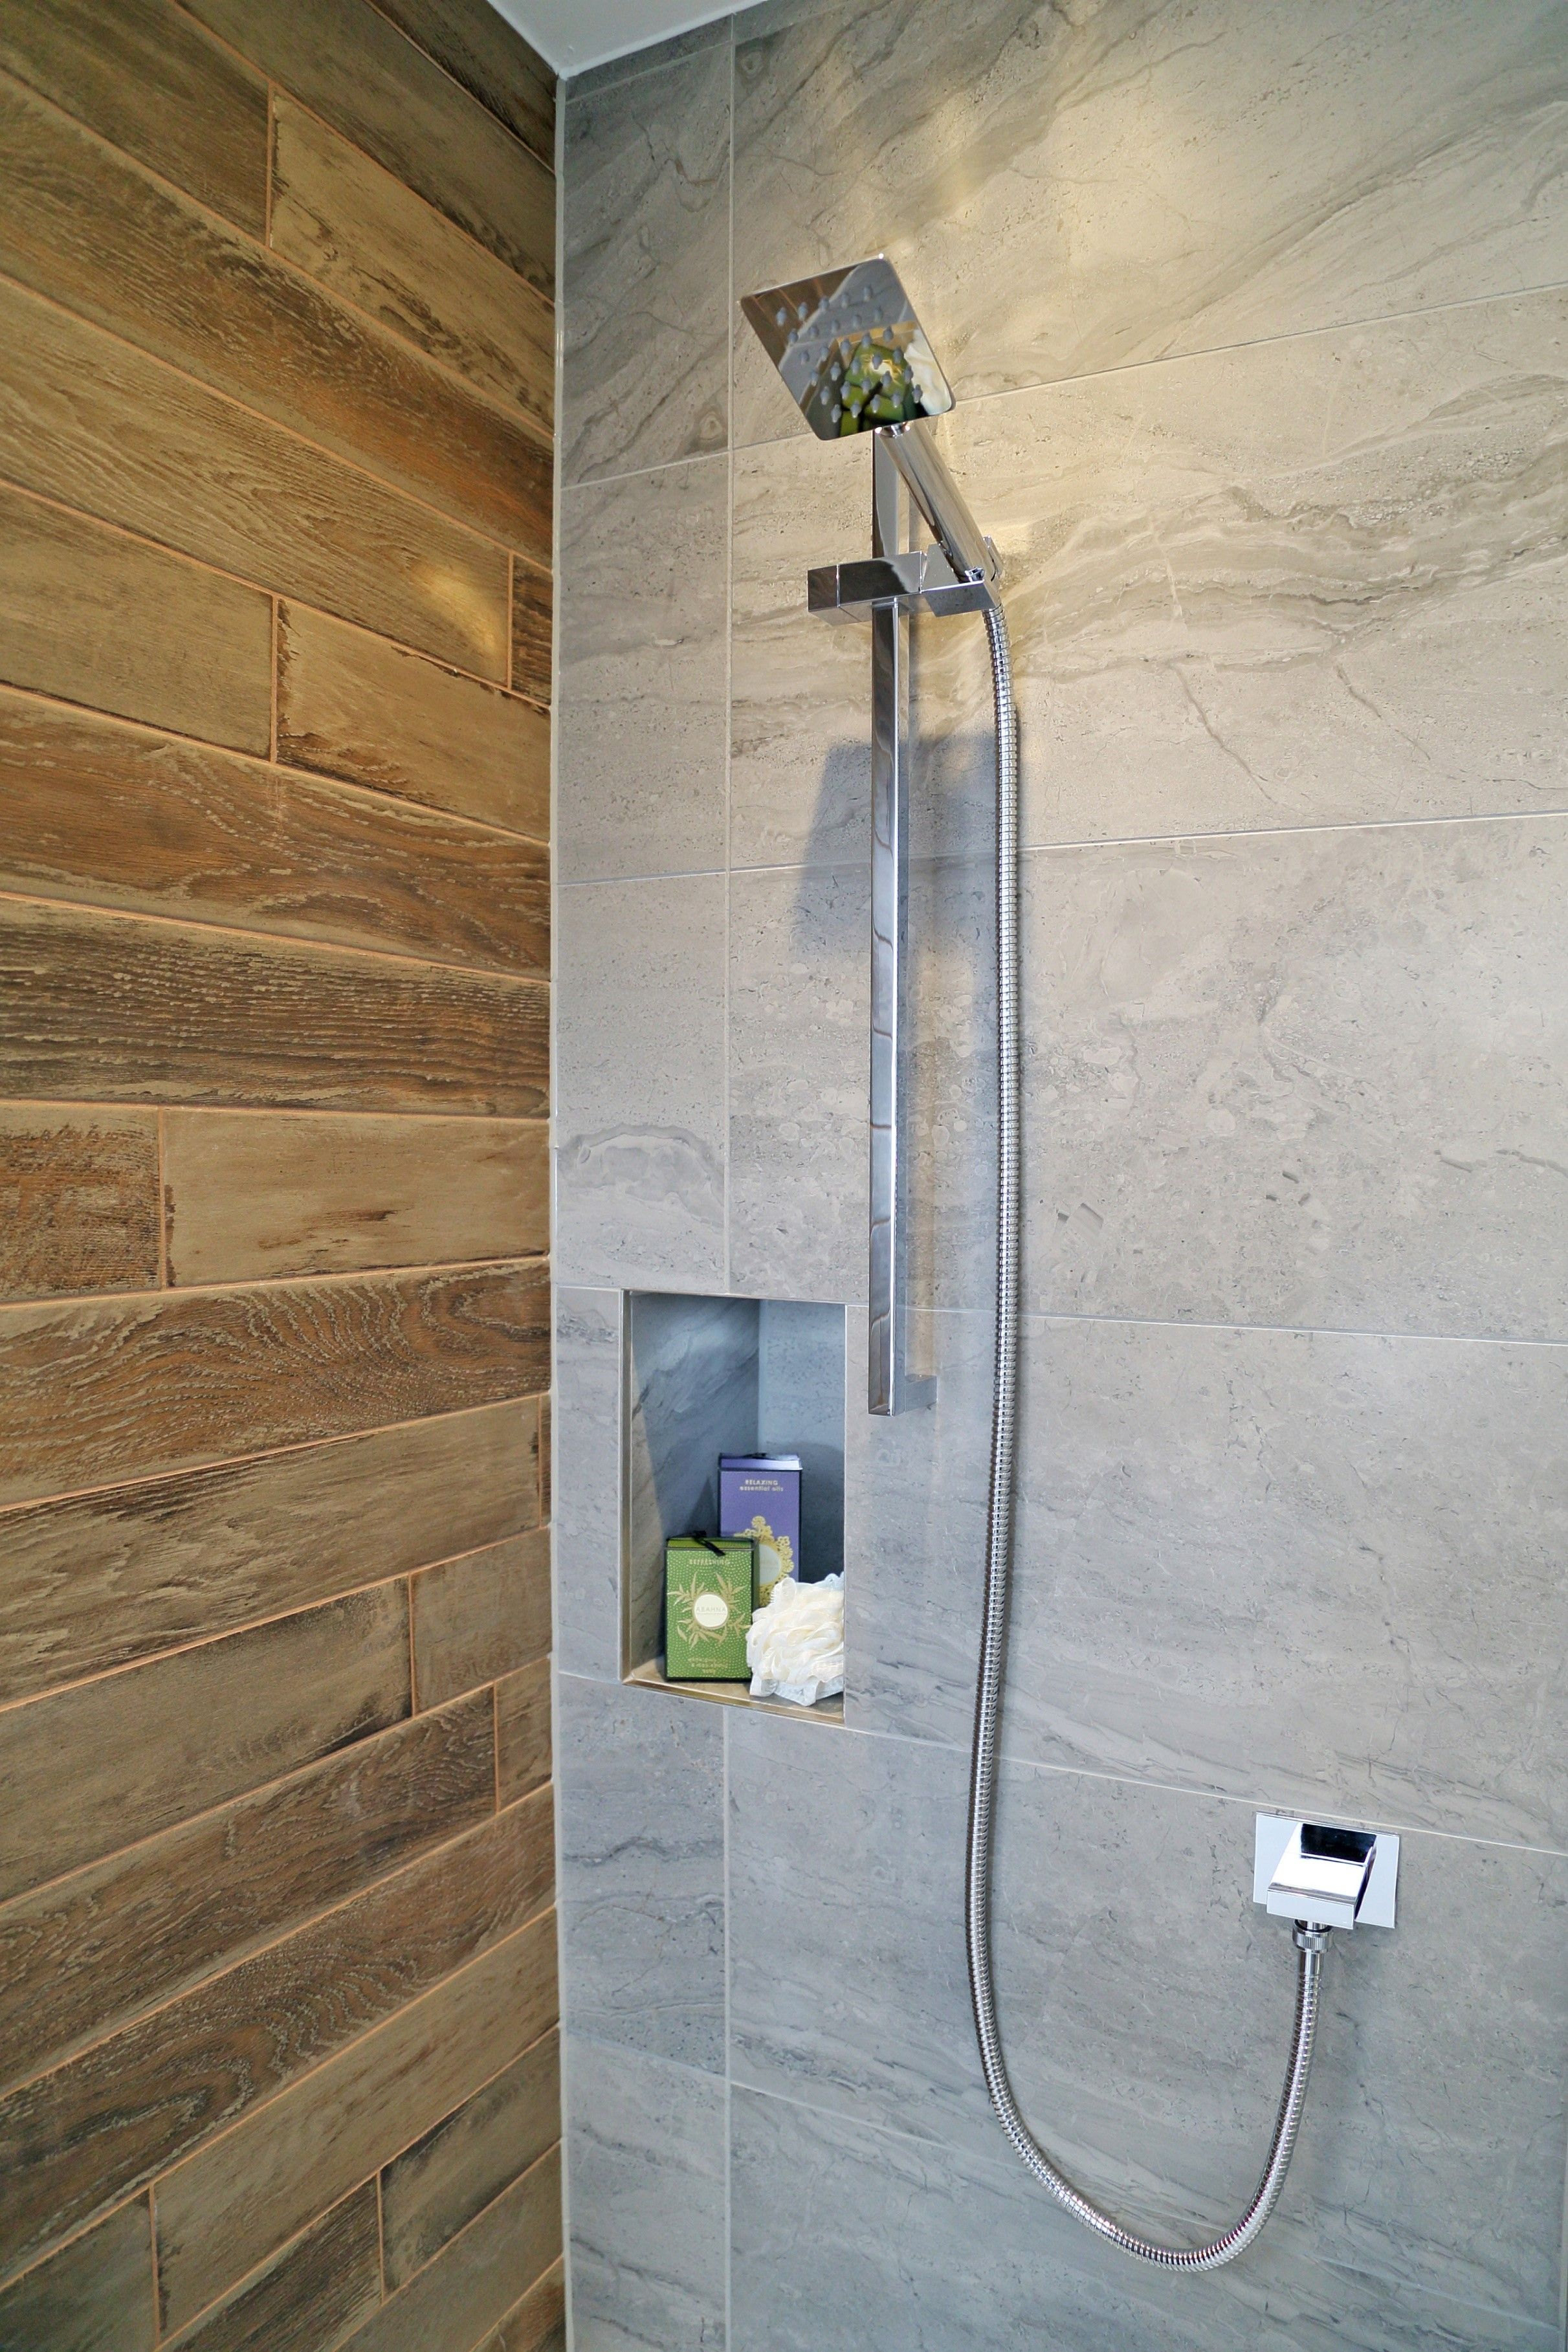 Relax into your own luxury lodge with minoli tree age porcelain tiles water resistance wood look tiles are suitable for shower walls